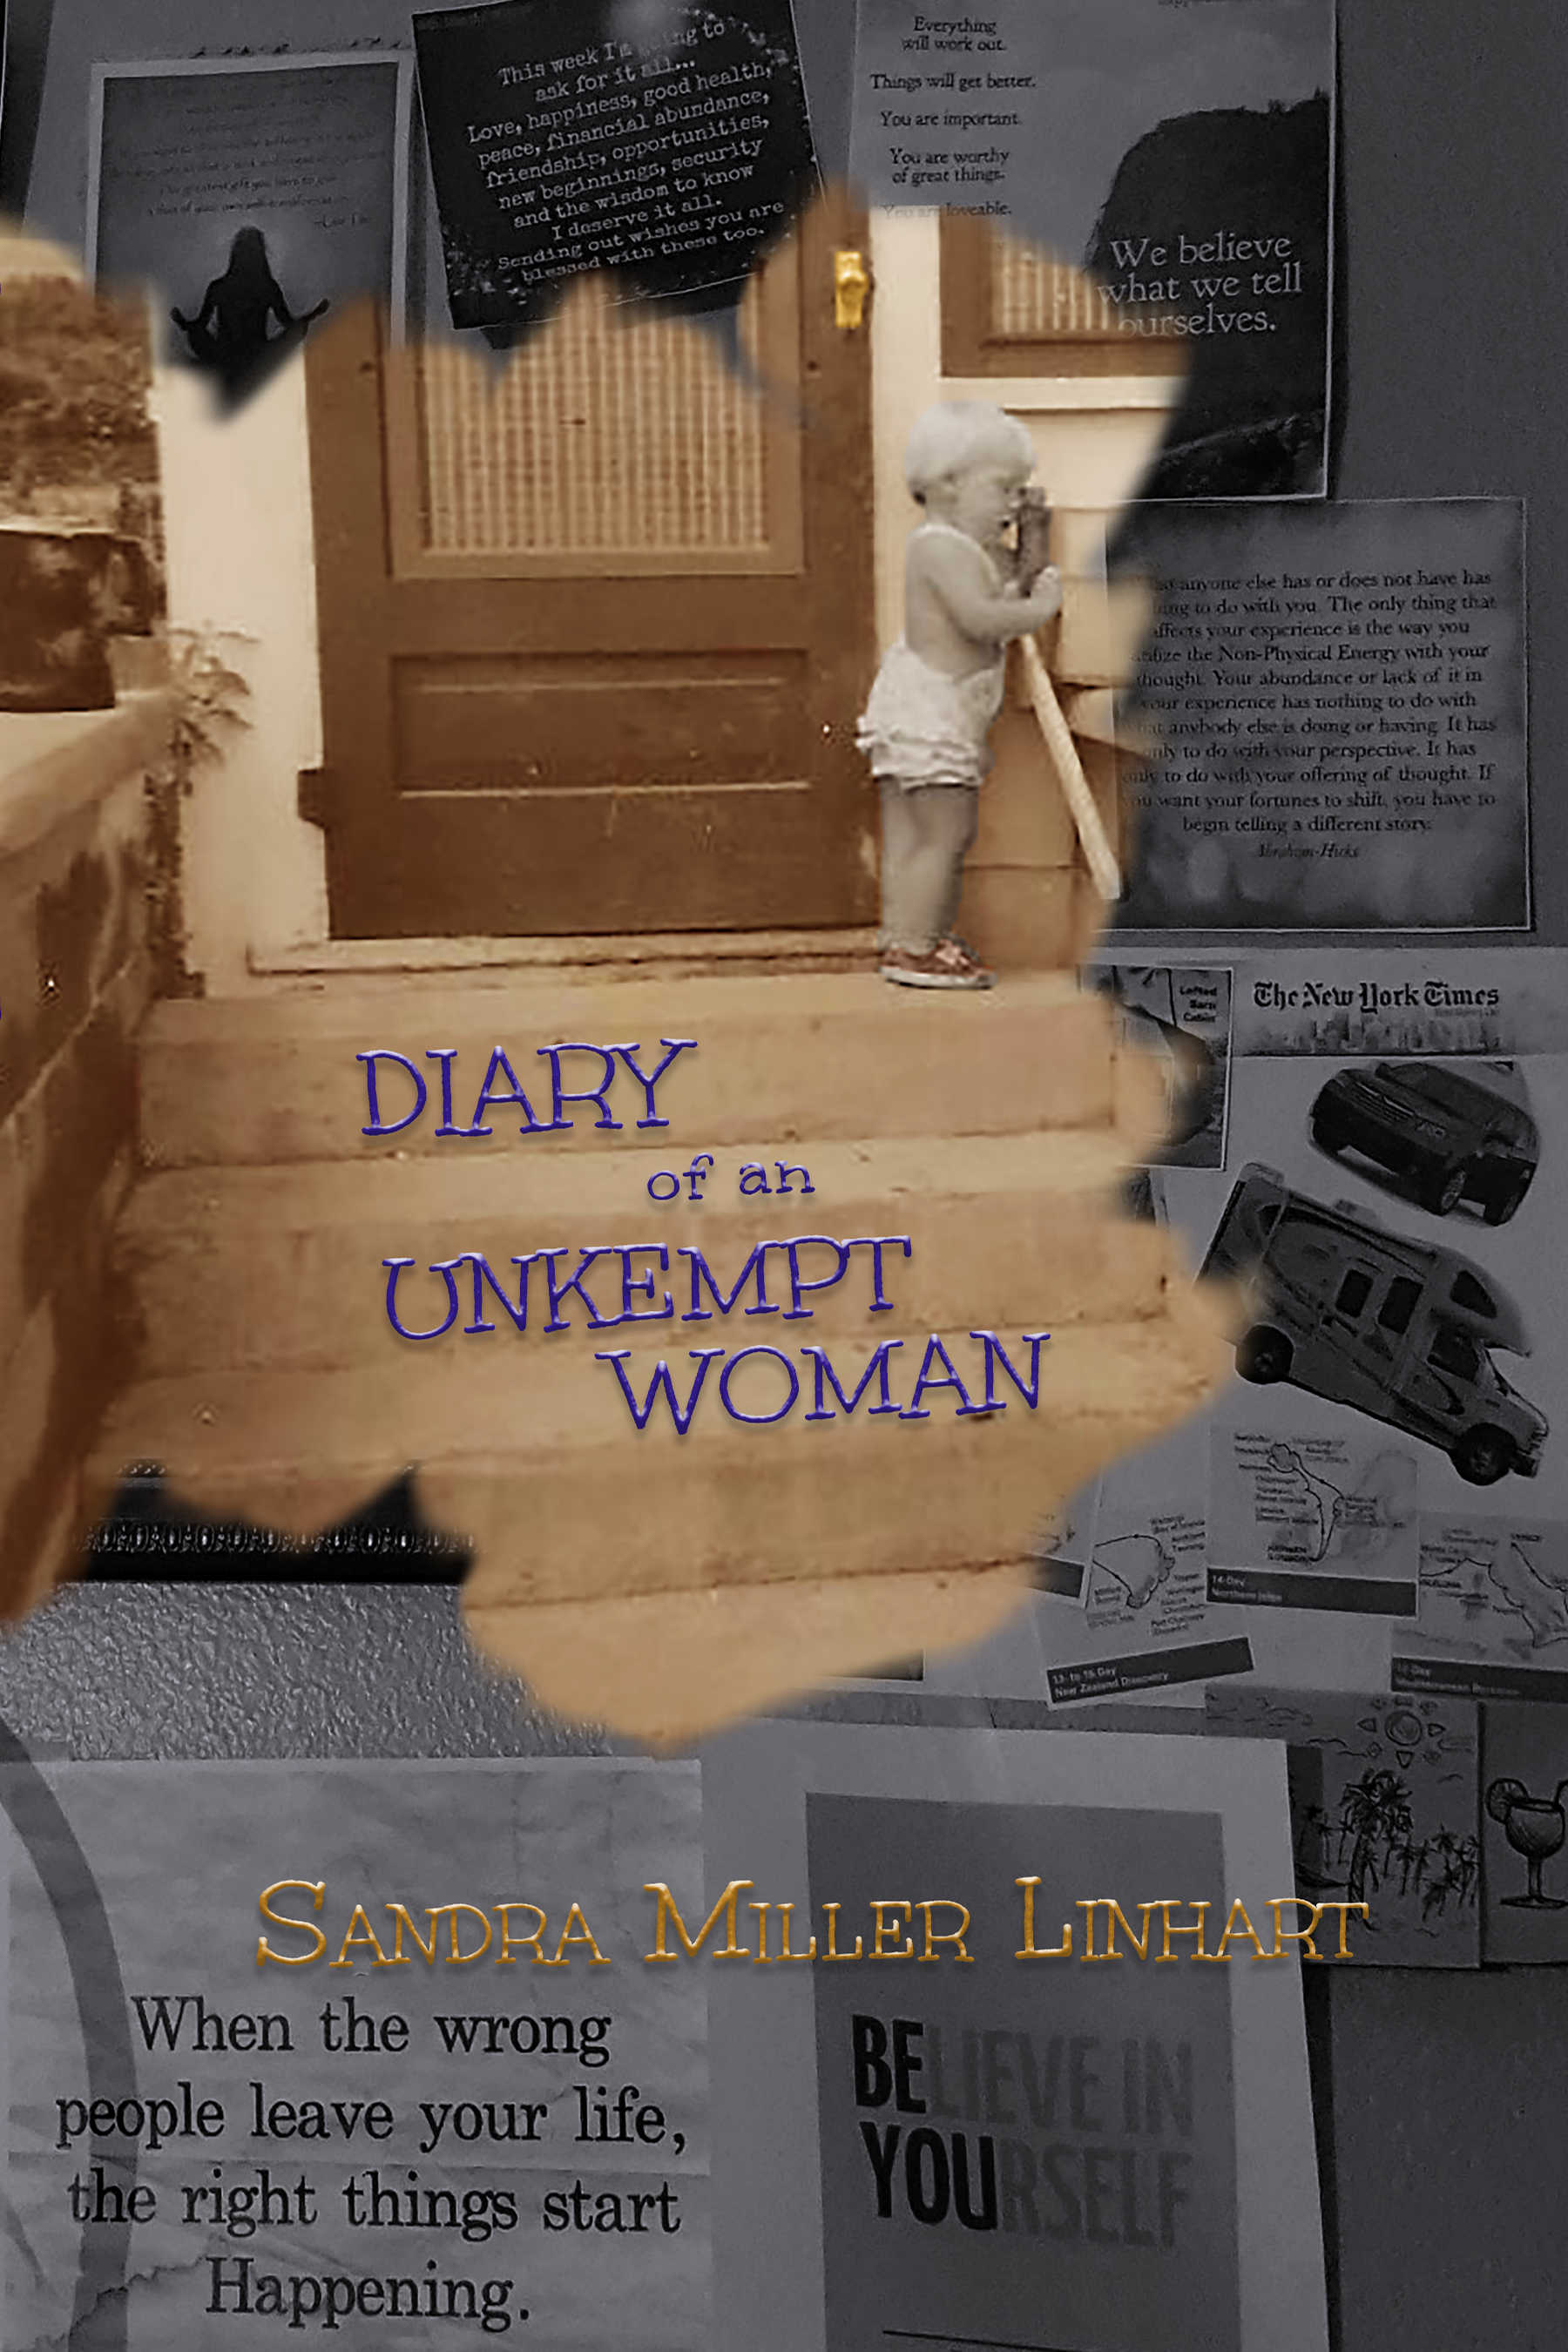 Diary of an Unkempt Woman